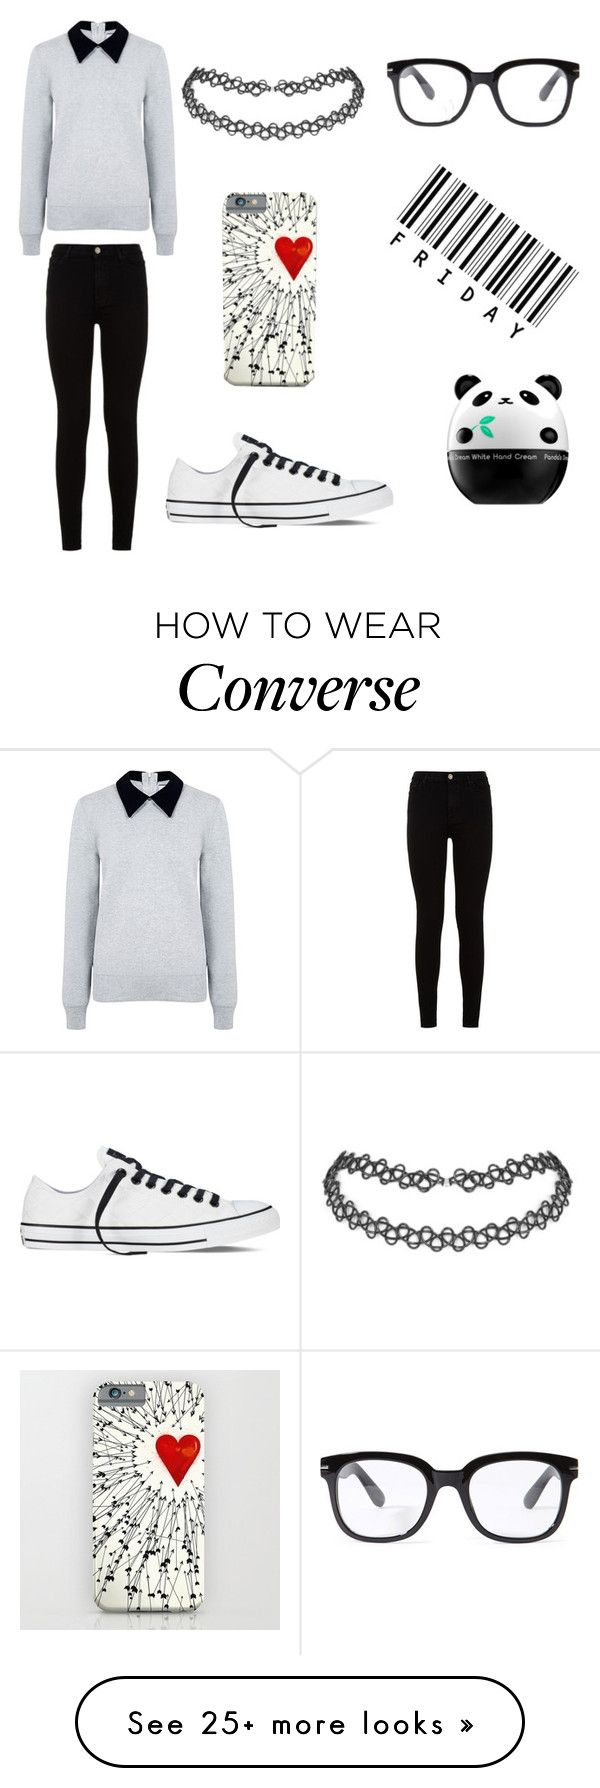 """""""RaNdOmNeSs"""" by liv-grise on Polyvore featuring Edit, 7 For All Mankind, Forever 21, Converse and Tony Moly"""